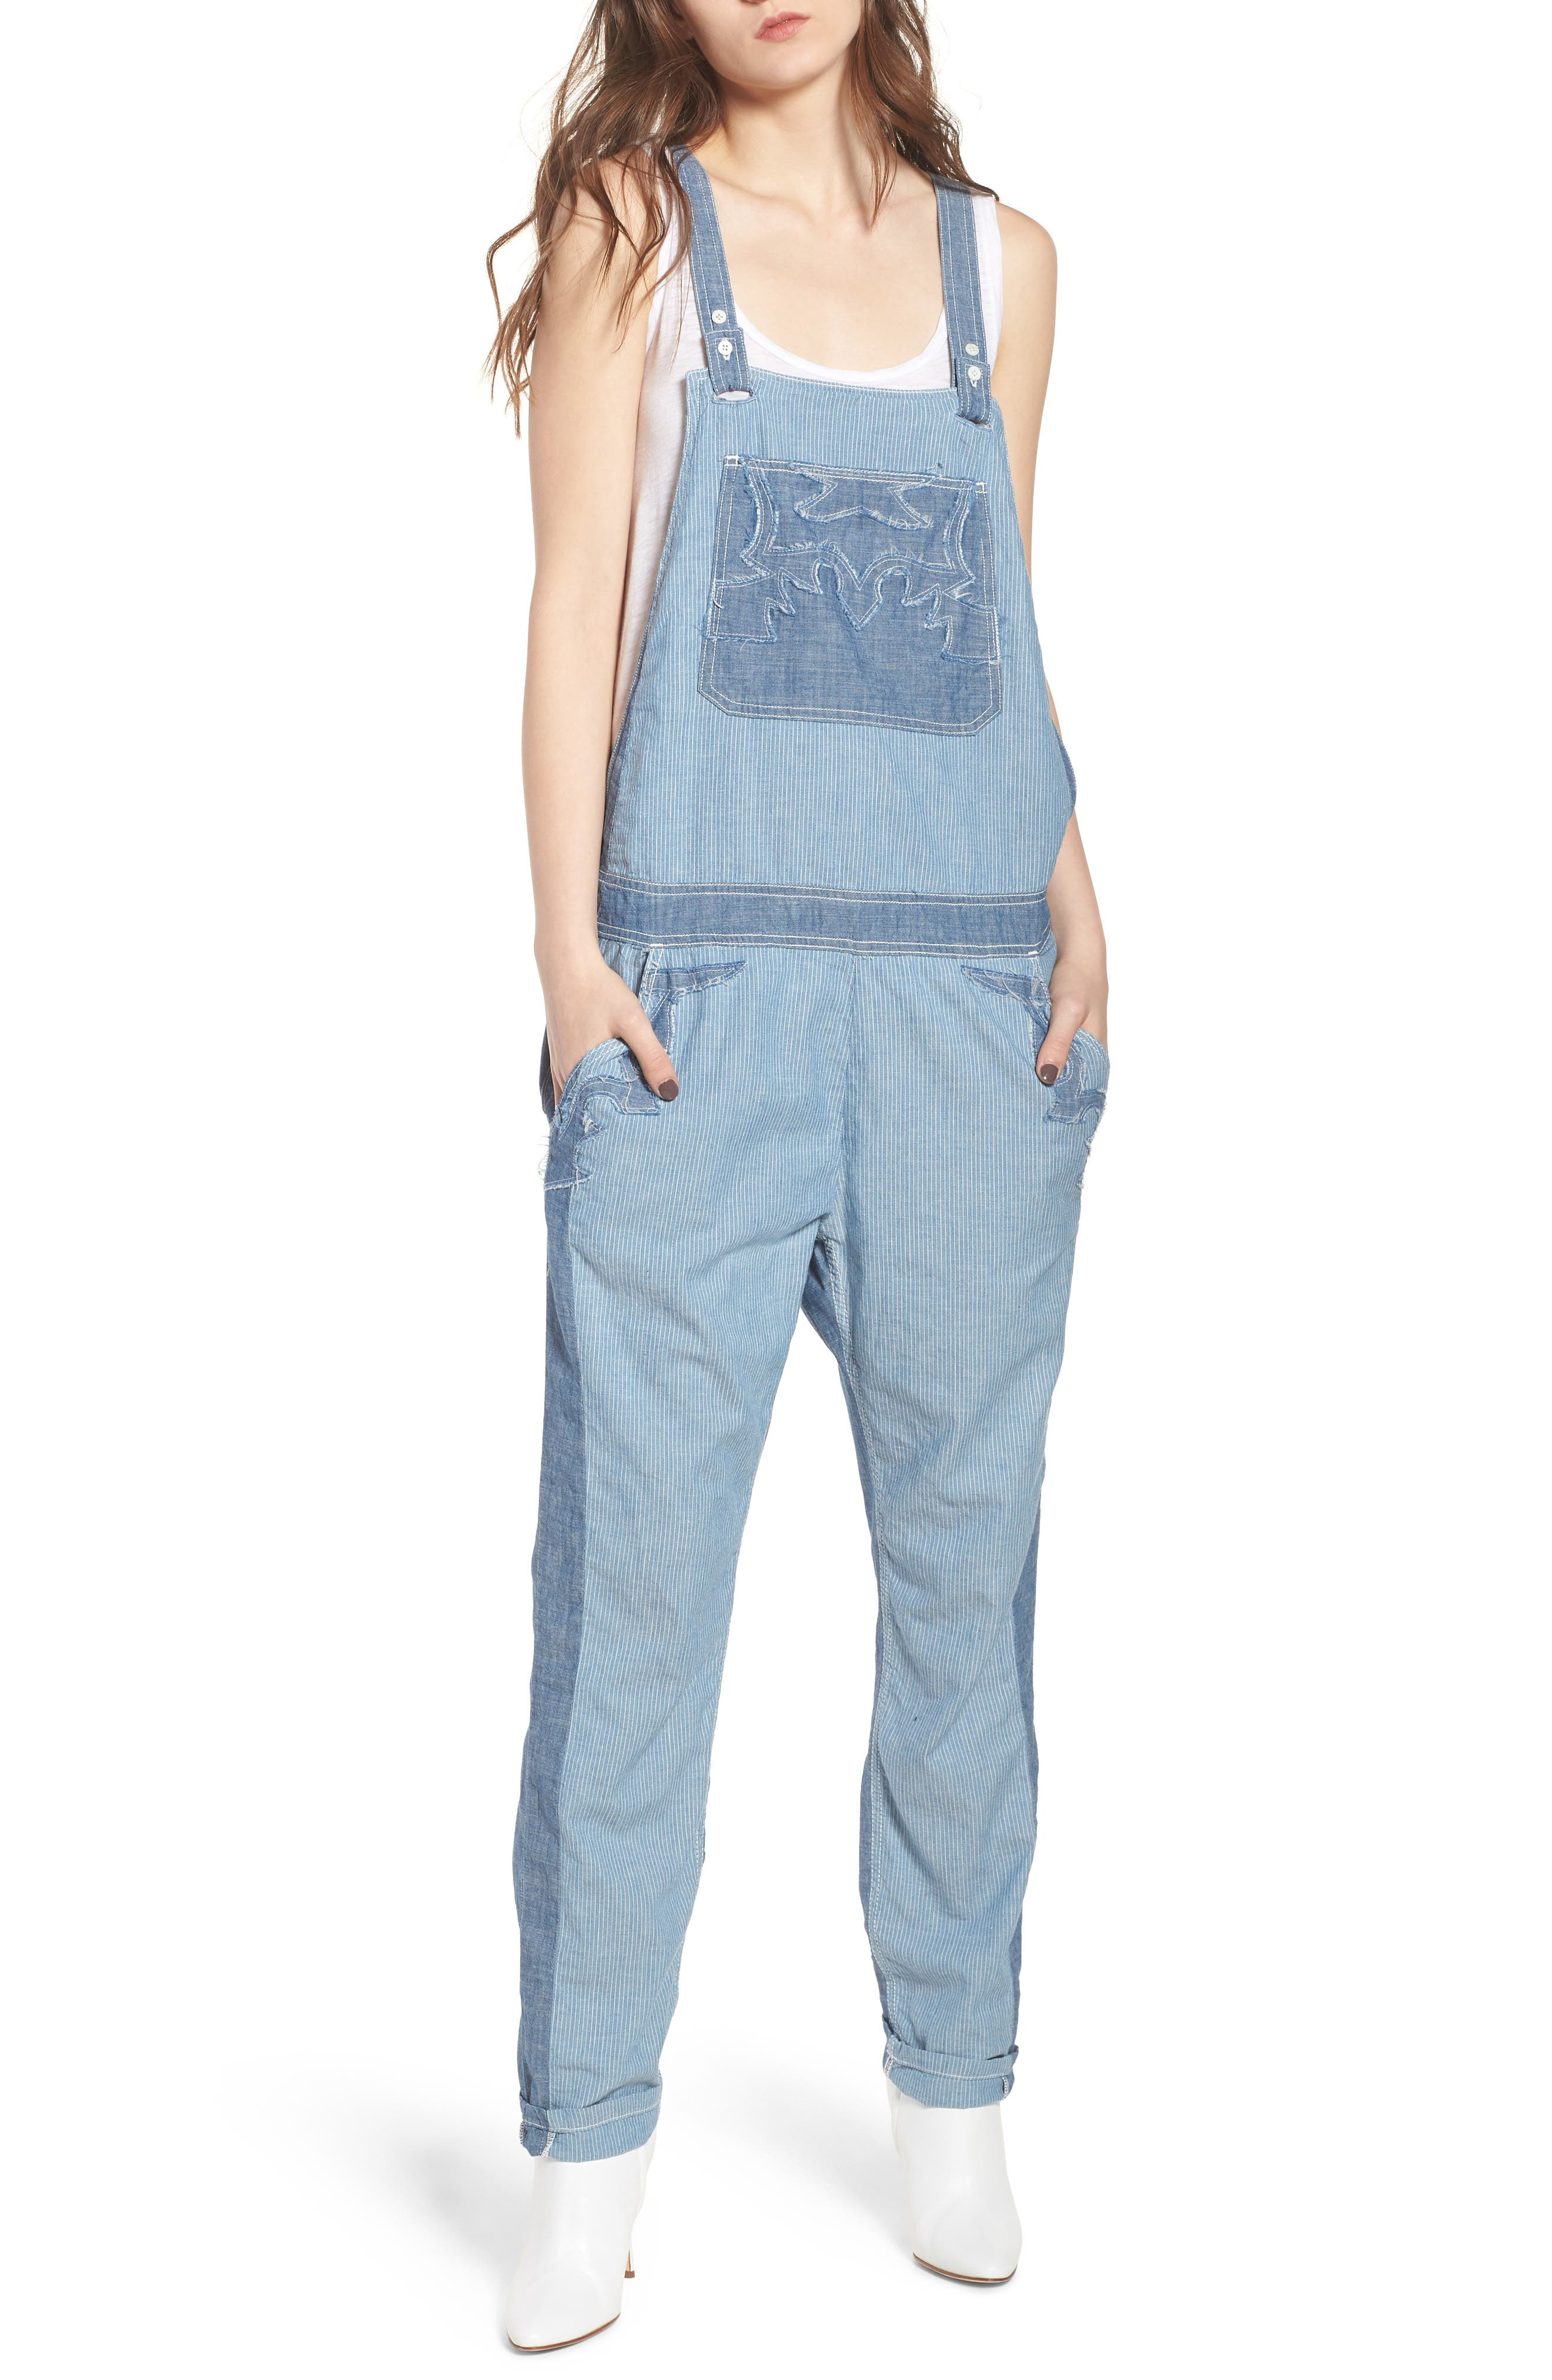 Sidney Patch Overalls,                             Main thumbnail 1, color,                             465